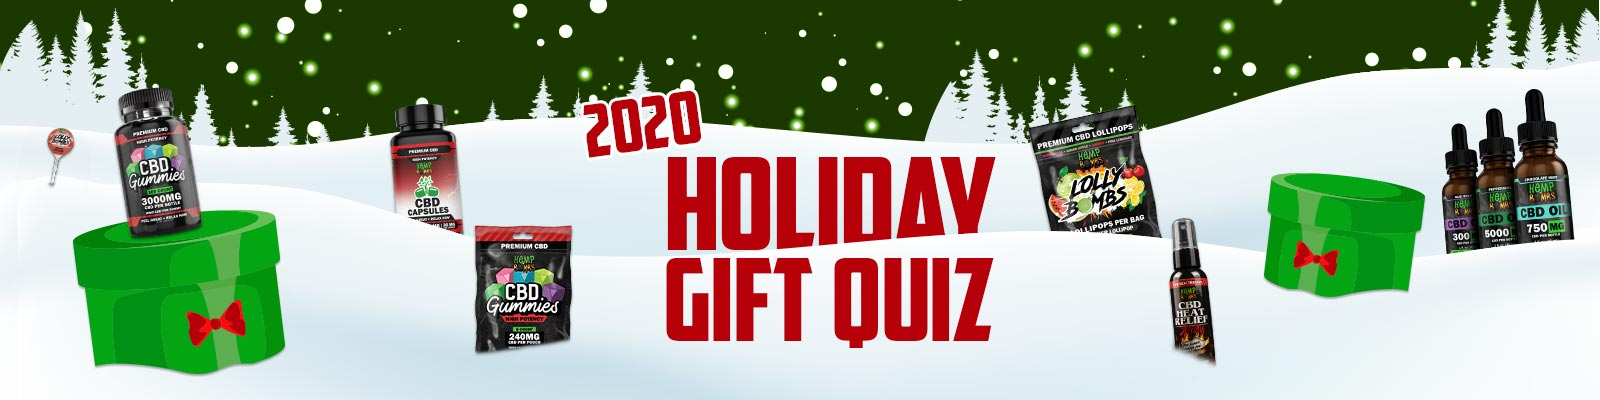 2020 Holiday Gift Quiz